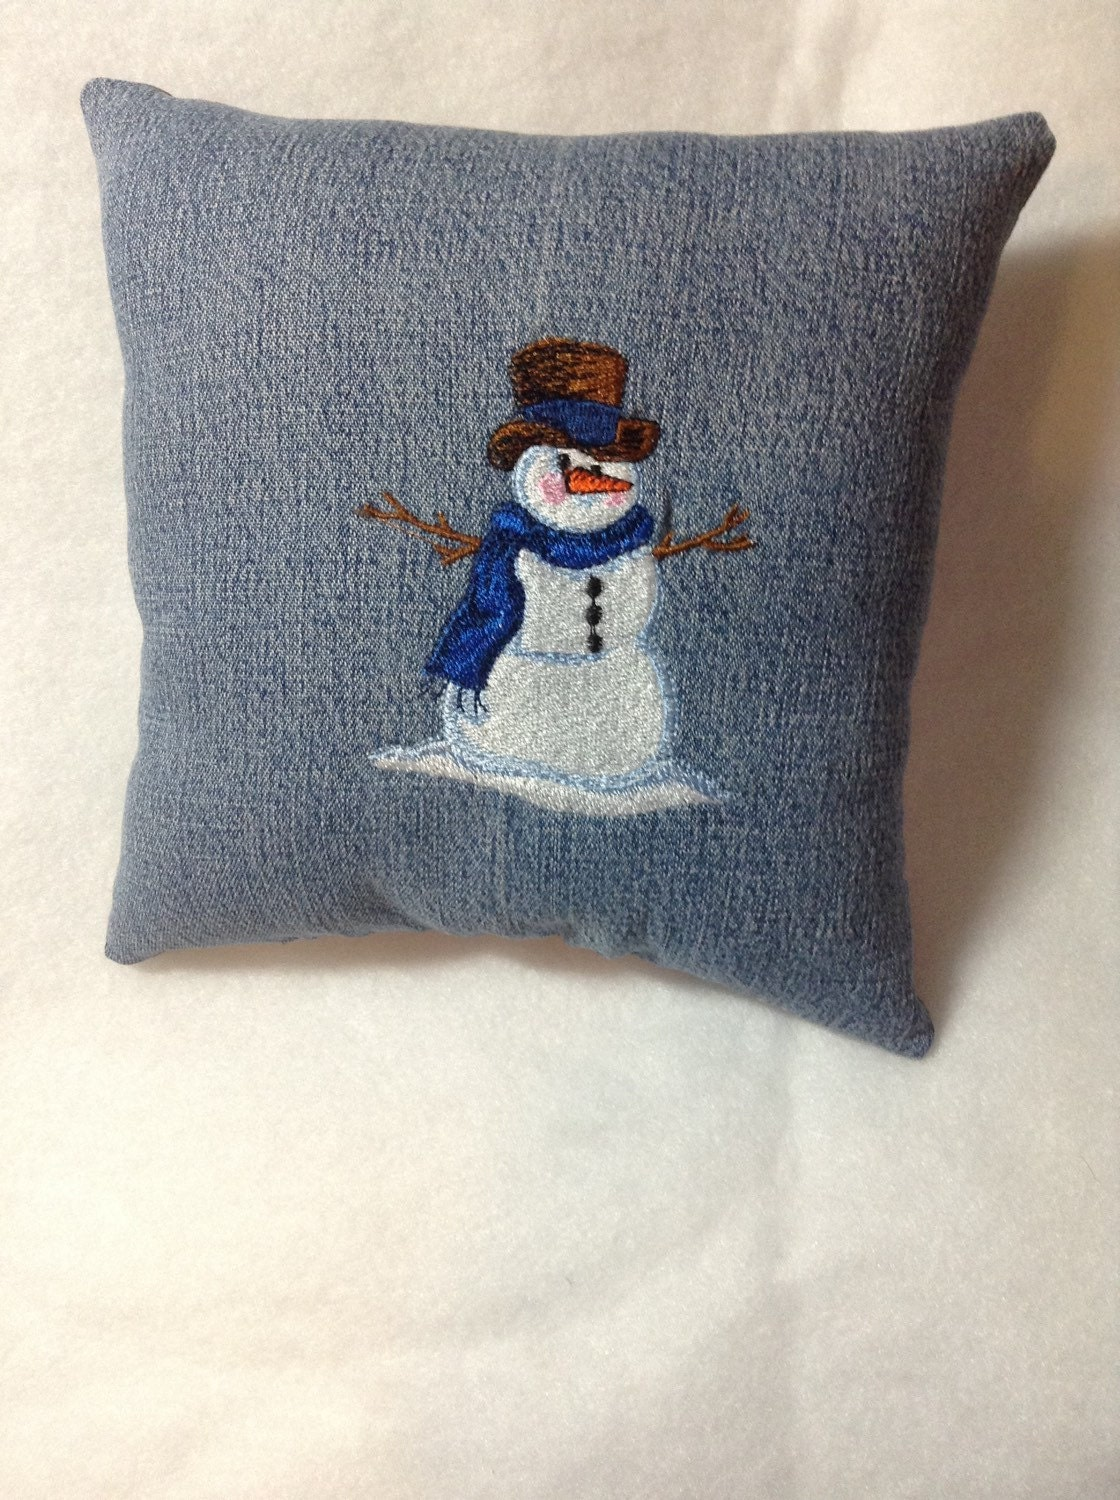 Blue Scarf Snowman Pillow